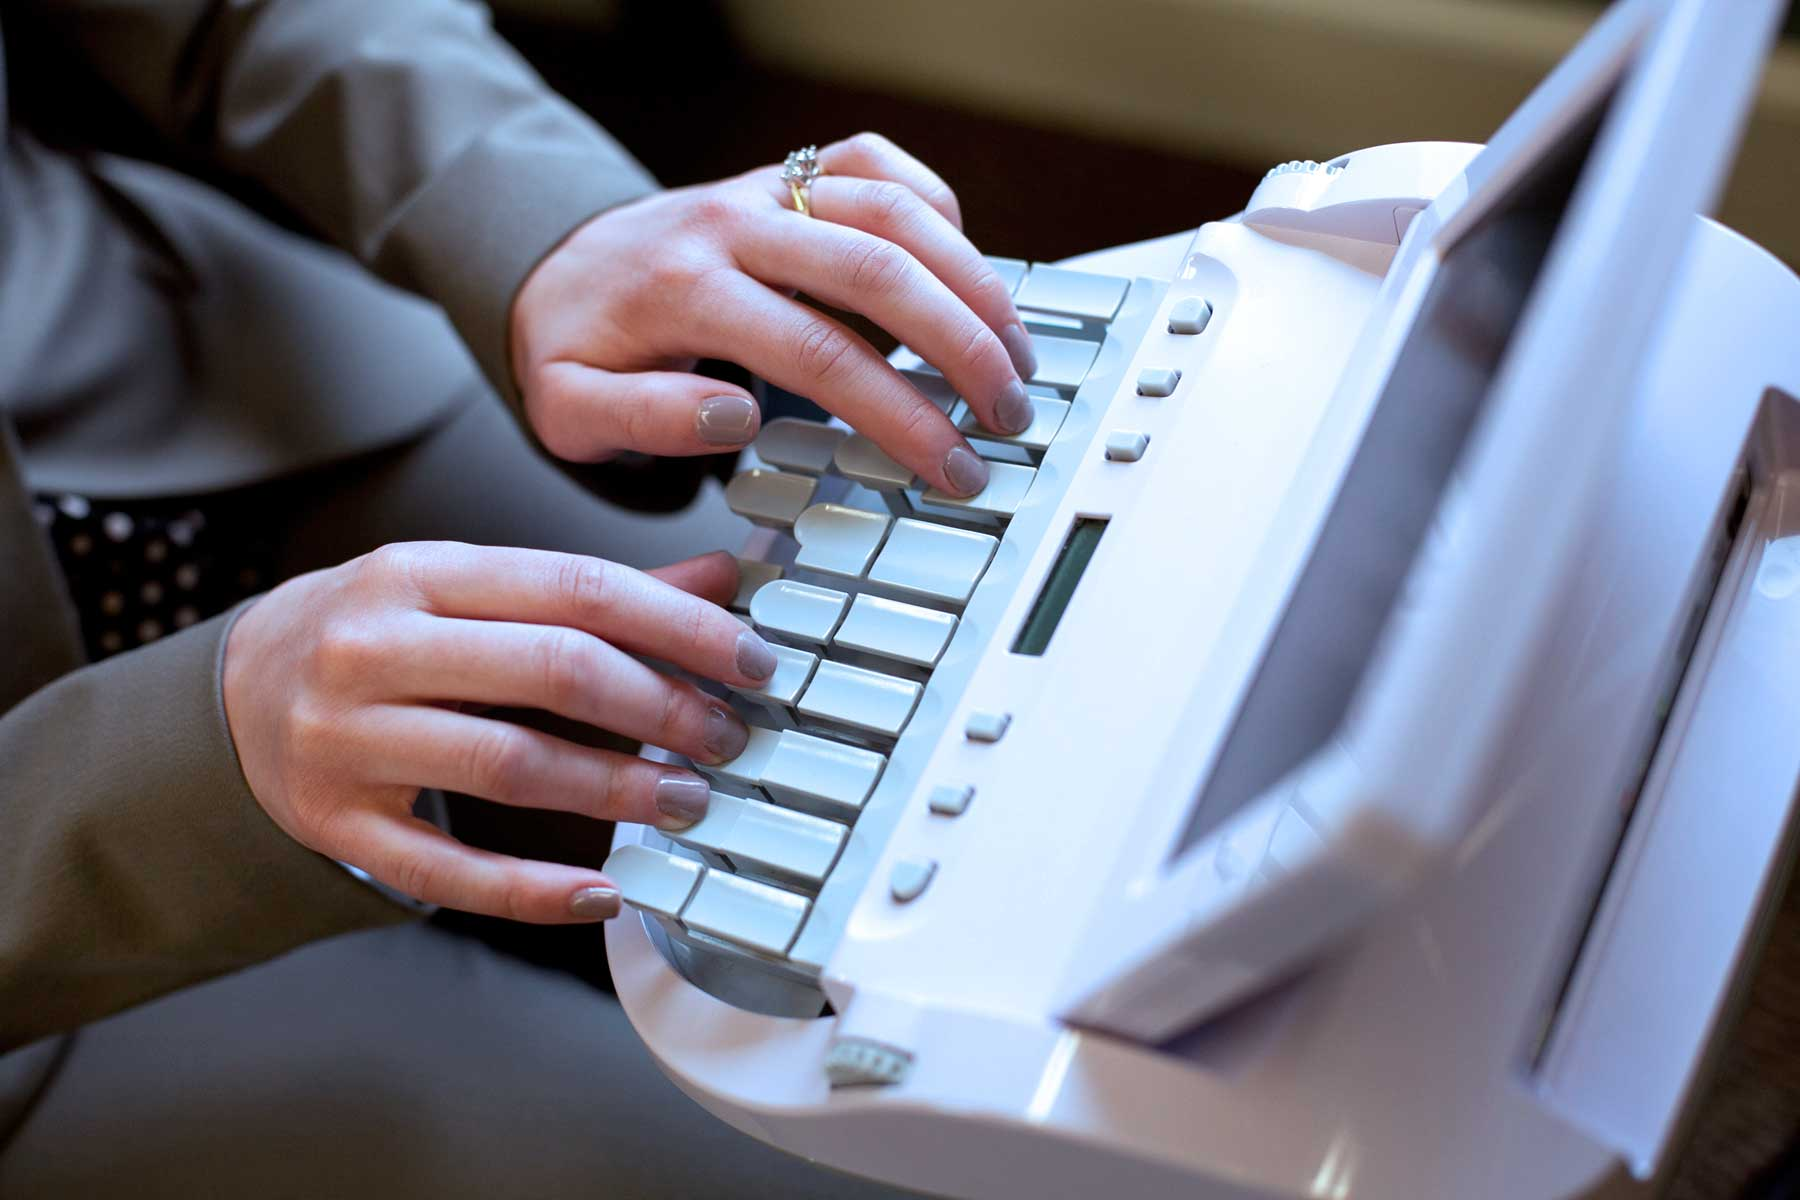 Court Reporter with hands on a steno machine